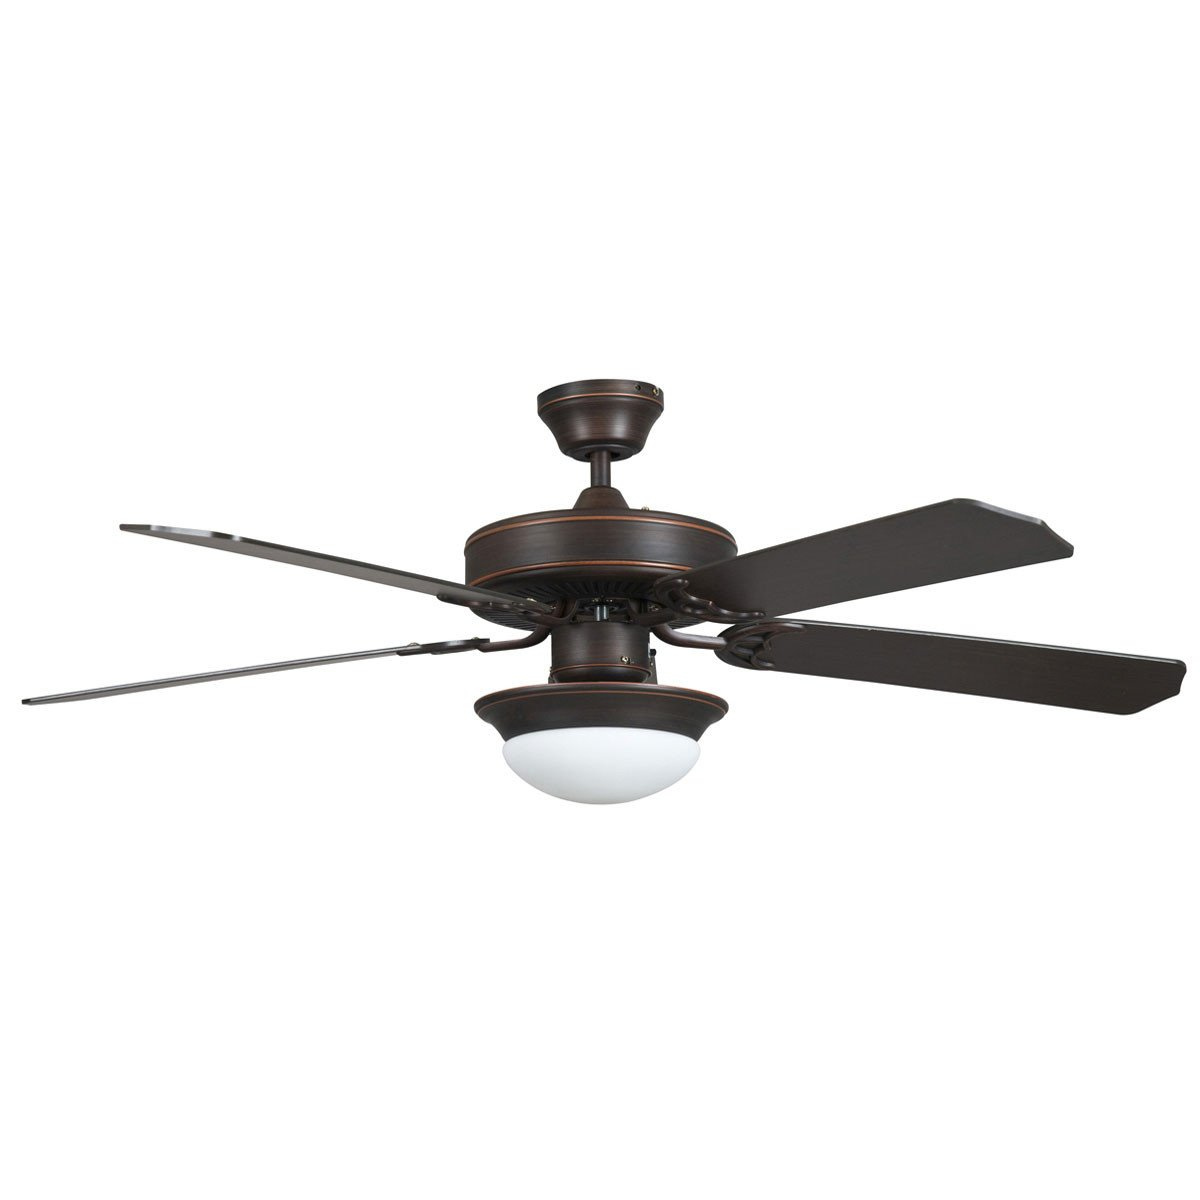 "Concord Fans 52"" Modern Energy Saver Oil Rubbed Bronze Ceiling Fan with Light"